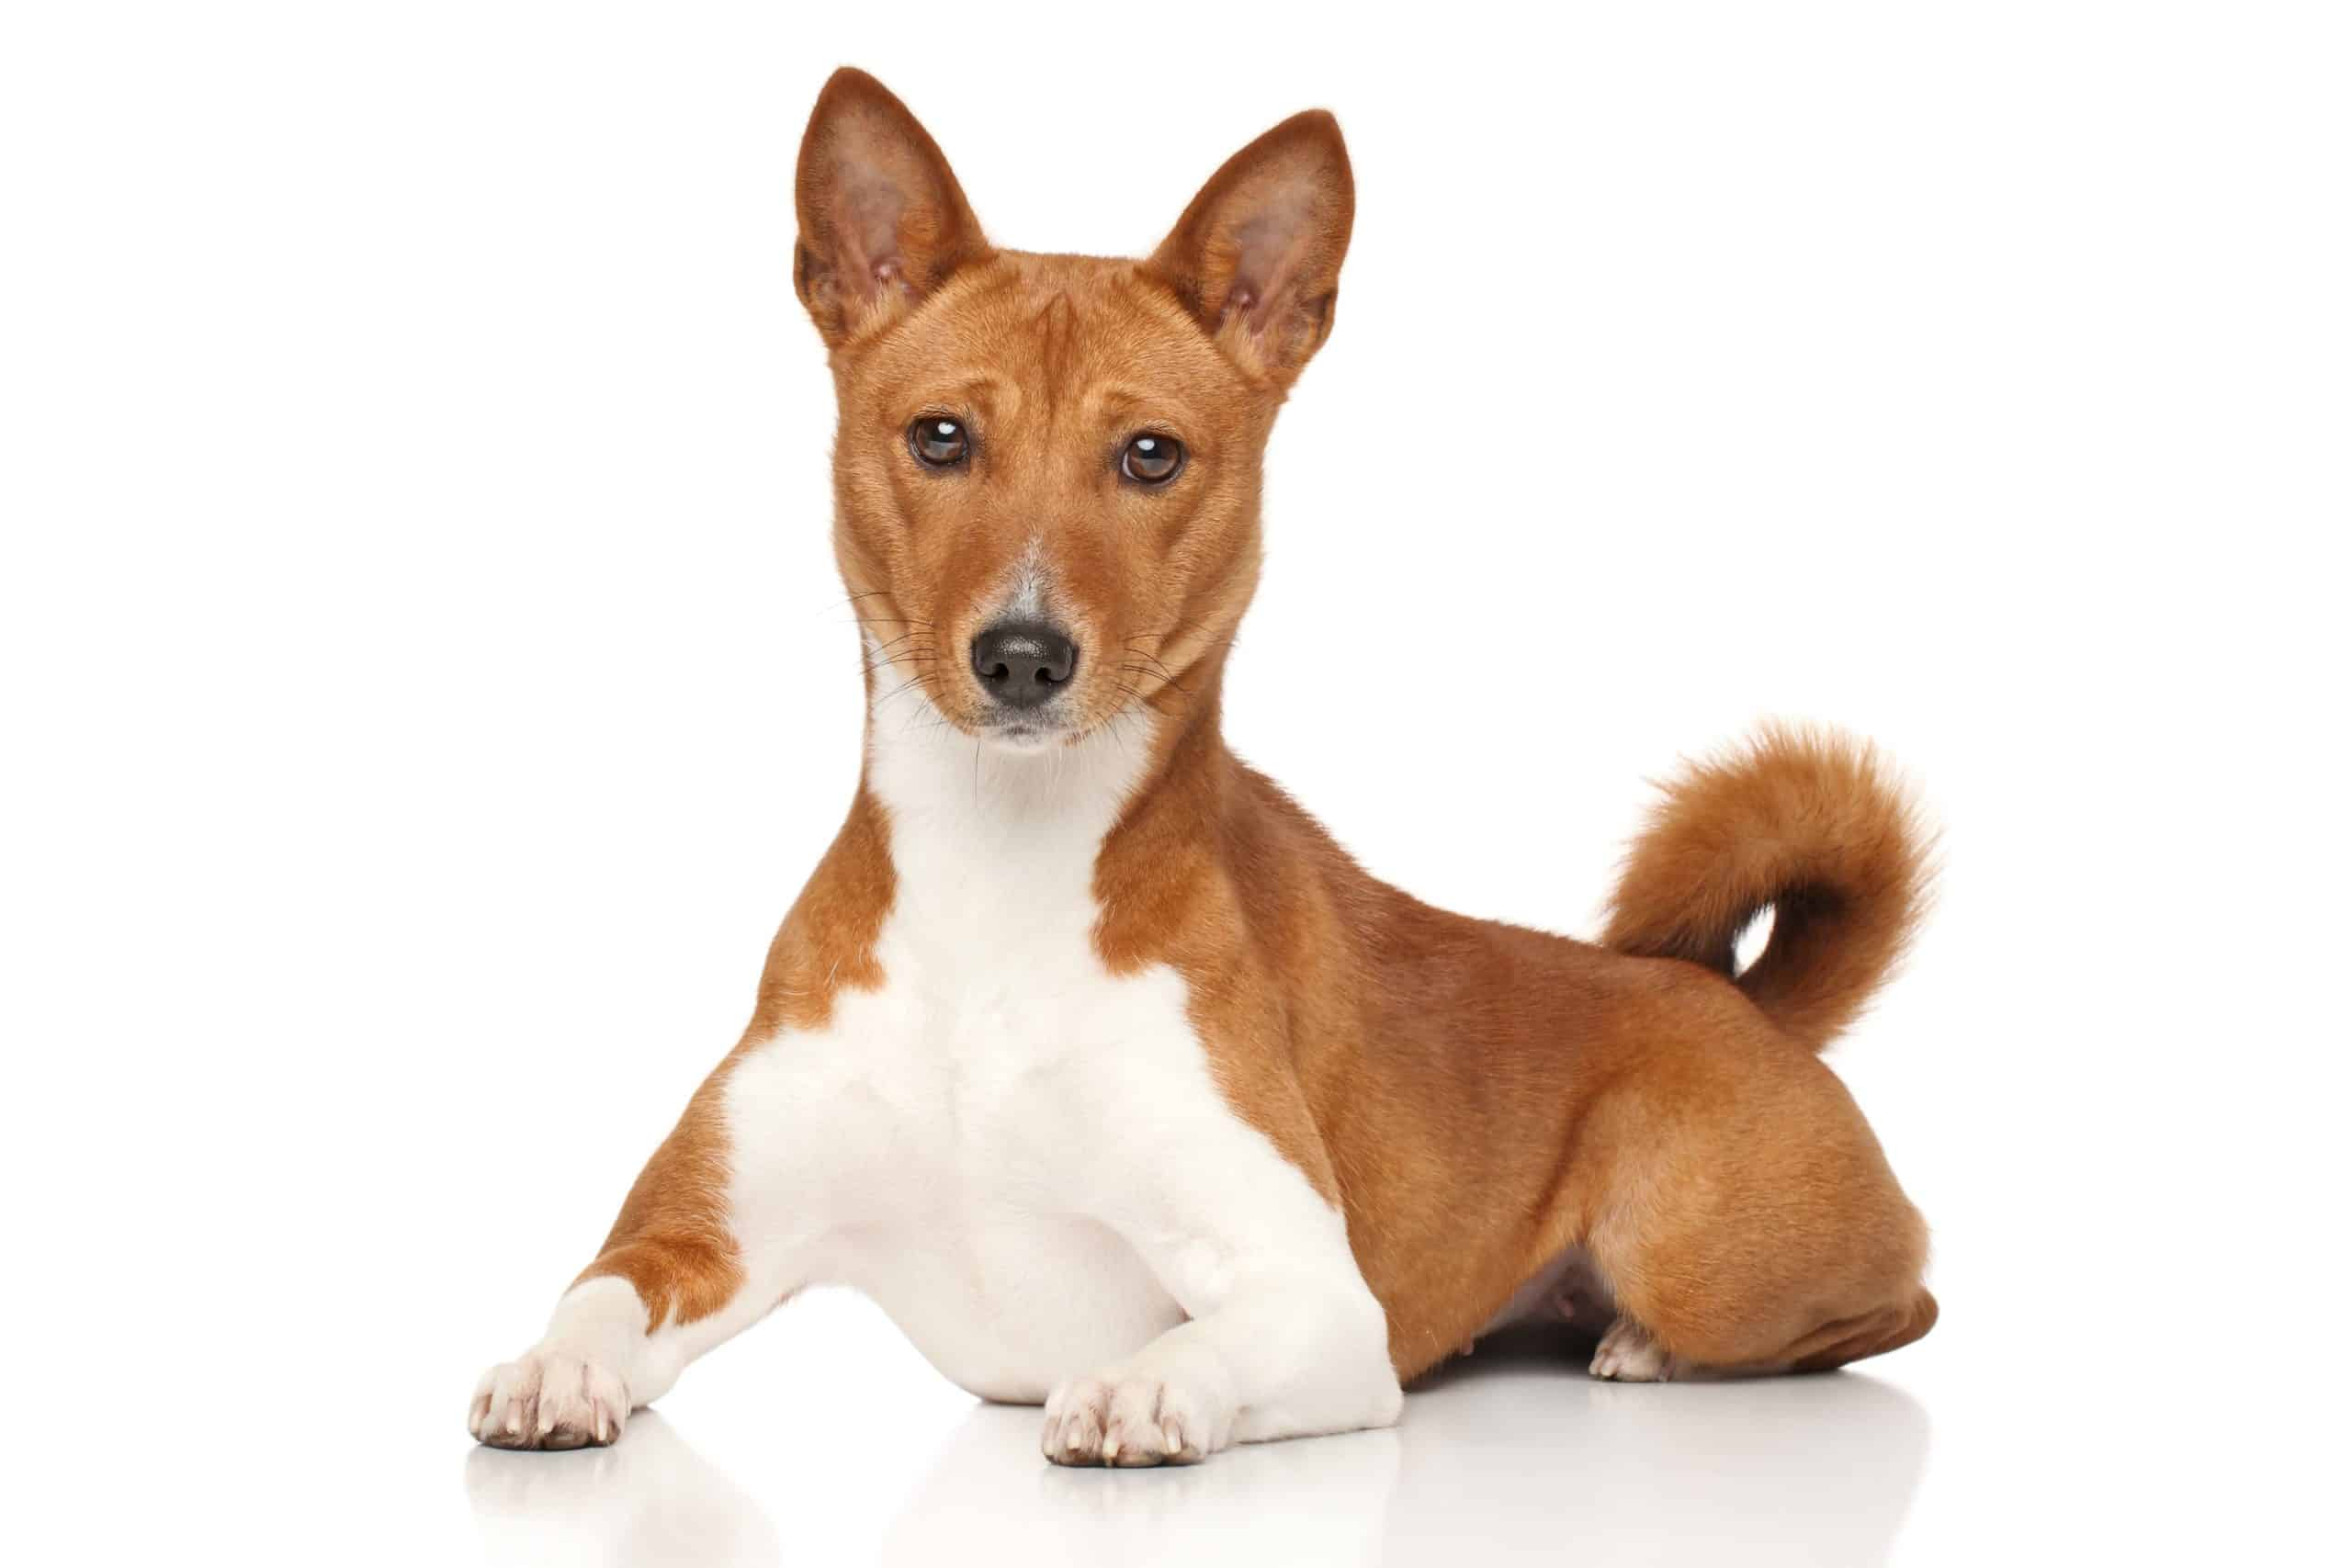 The Basenji is considered a non-shedding dog.